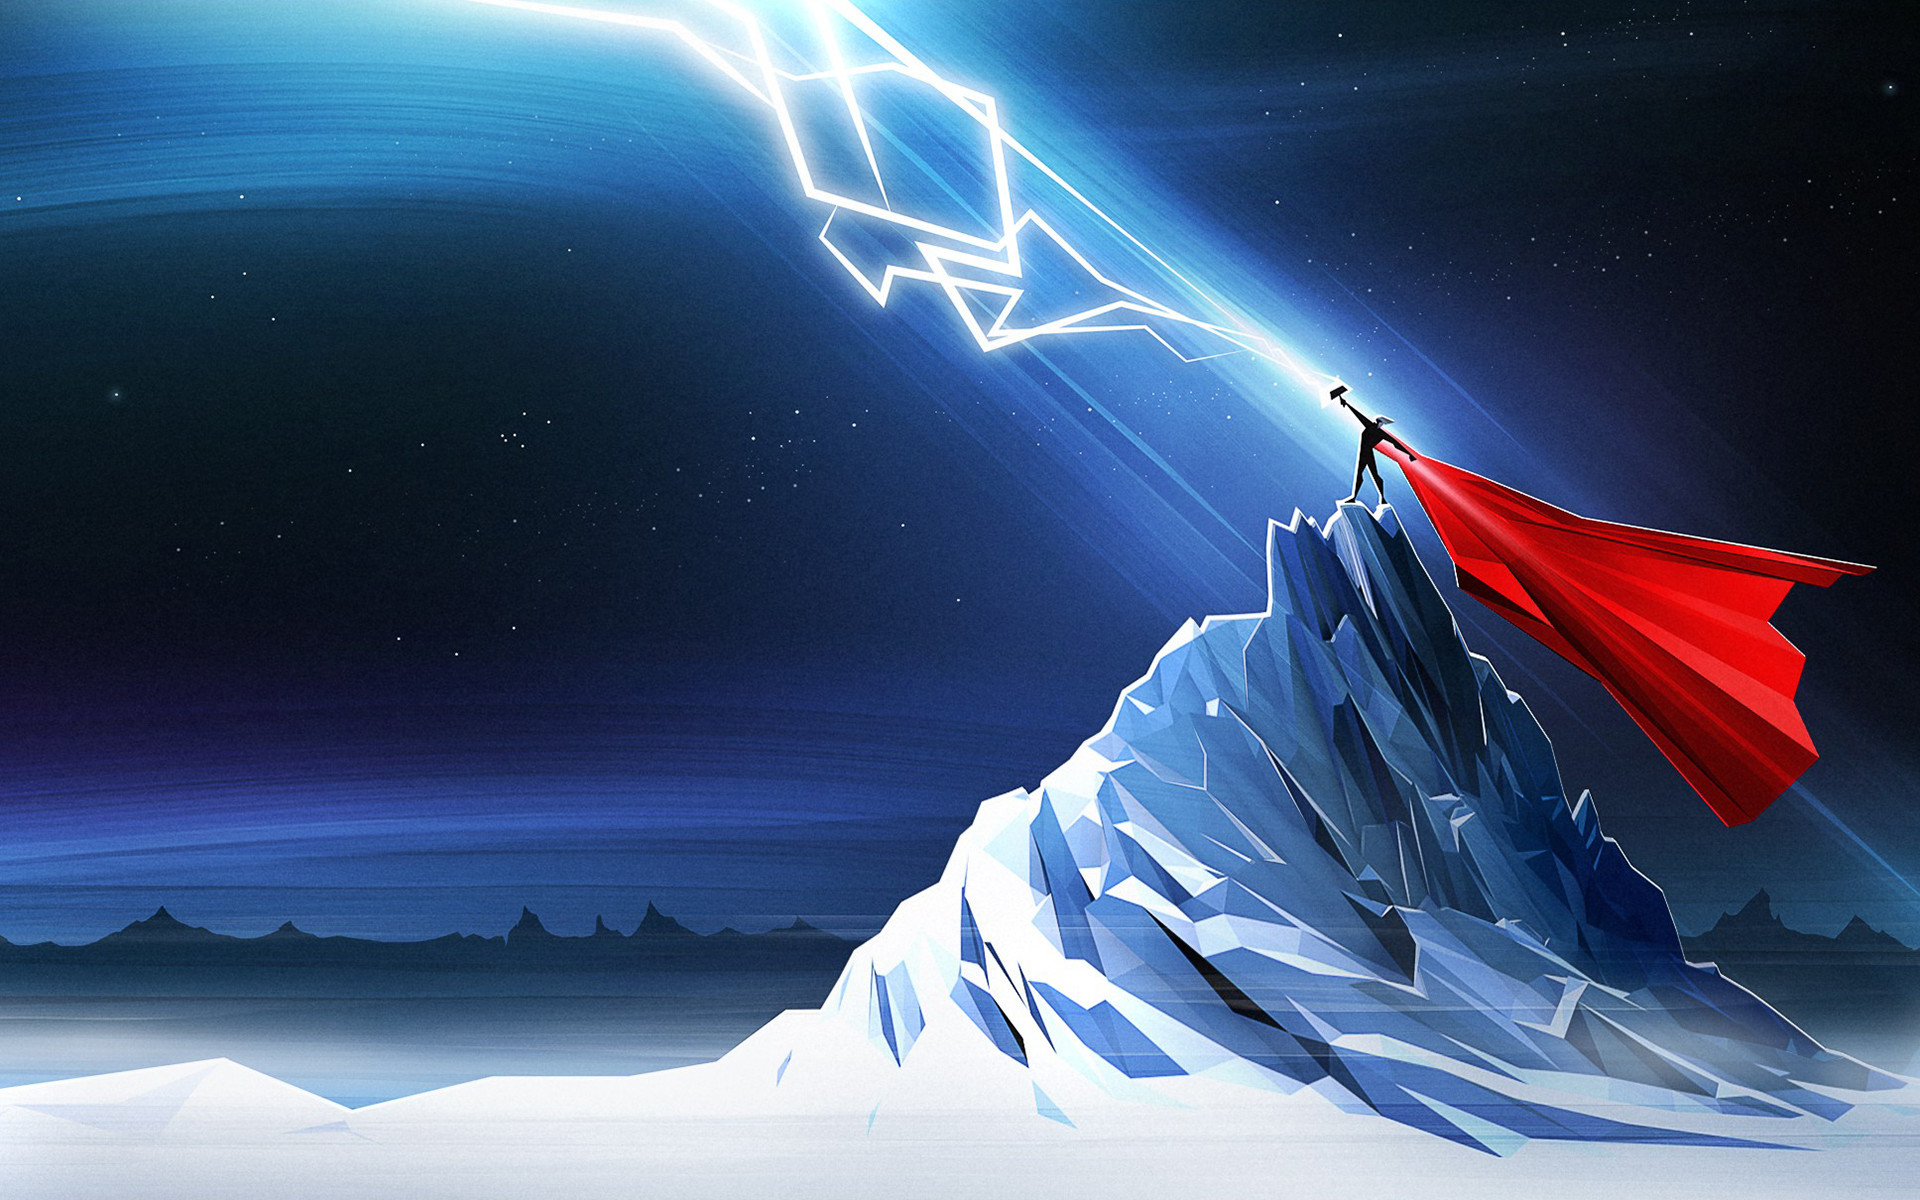 1920x1200 <b>Cool Lightning Wallpapers</b> - WallpaperSafari